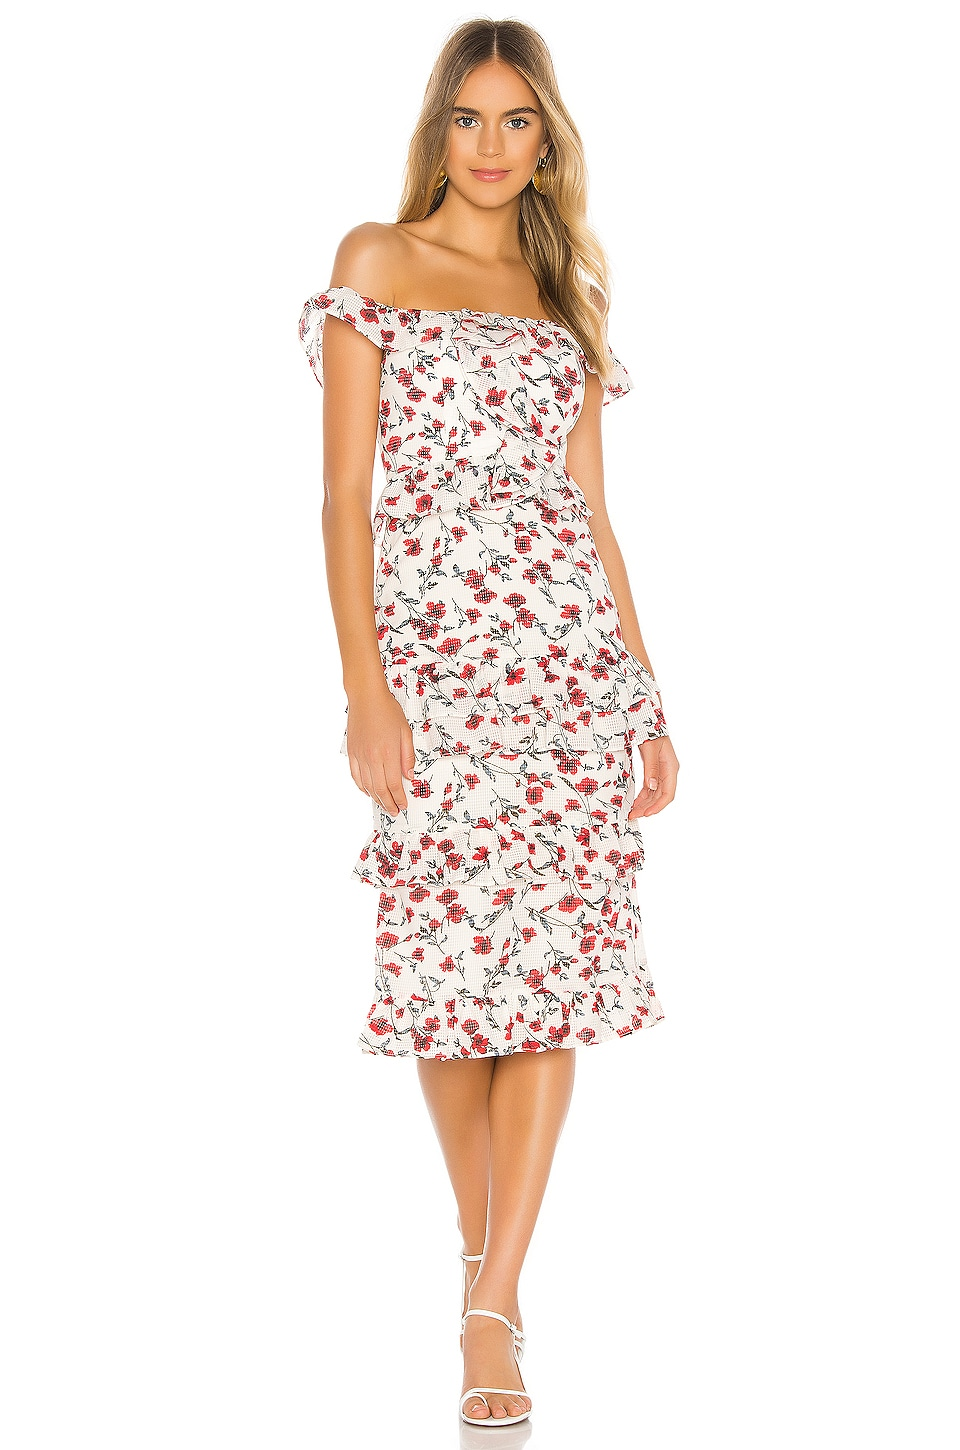 Tularosa Lily Dress in Red Dolly Floral